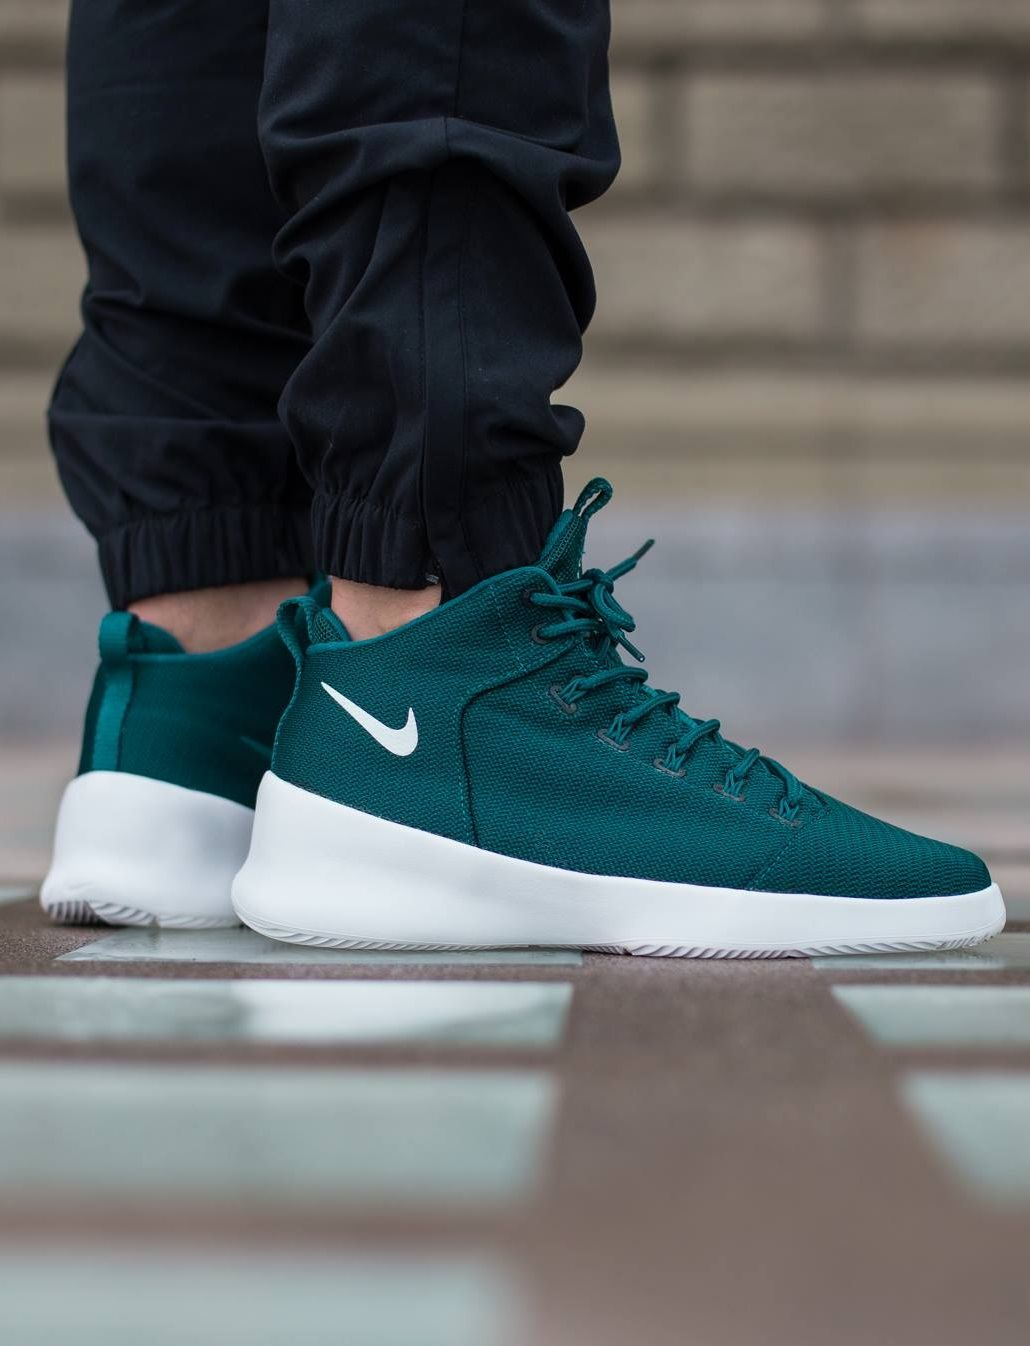 new style be56c ac809 Nike Hyperfr3sh  Green Tubular Defiant, Men s Apparel, Adidas Sneakers,  Kicks, Tennis